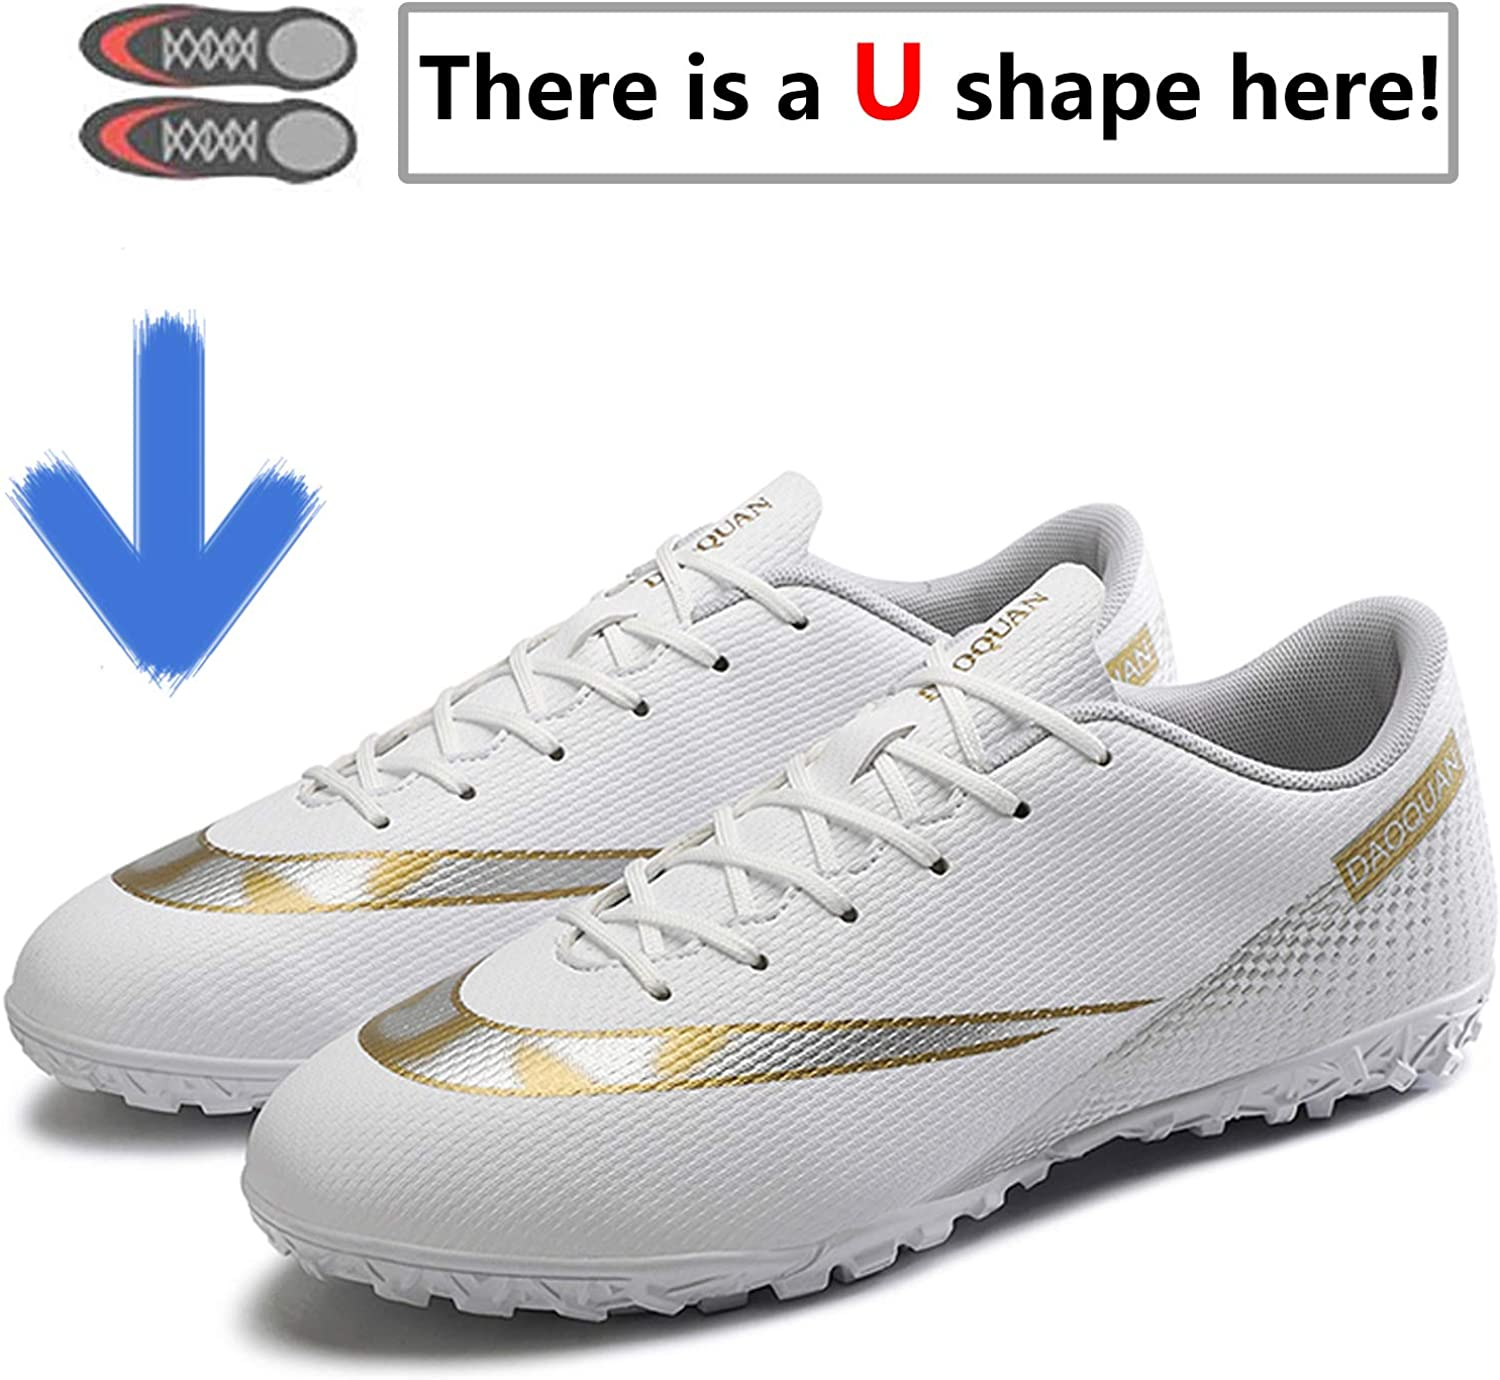 Topwolve Football Boots Mens Breathable Turf Trainers Outdoor Cleats Professional Athletics Sneakers Teens Wear-Resistence Soccer Shoes Non-Slip Unisex